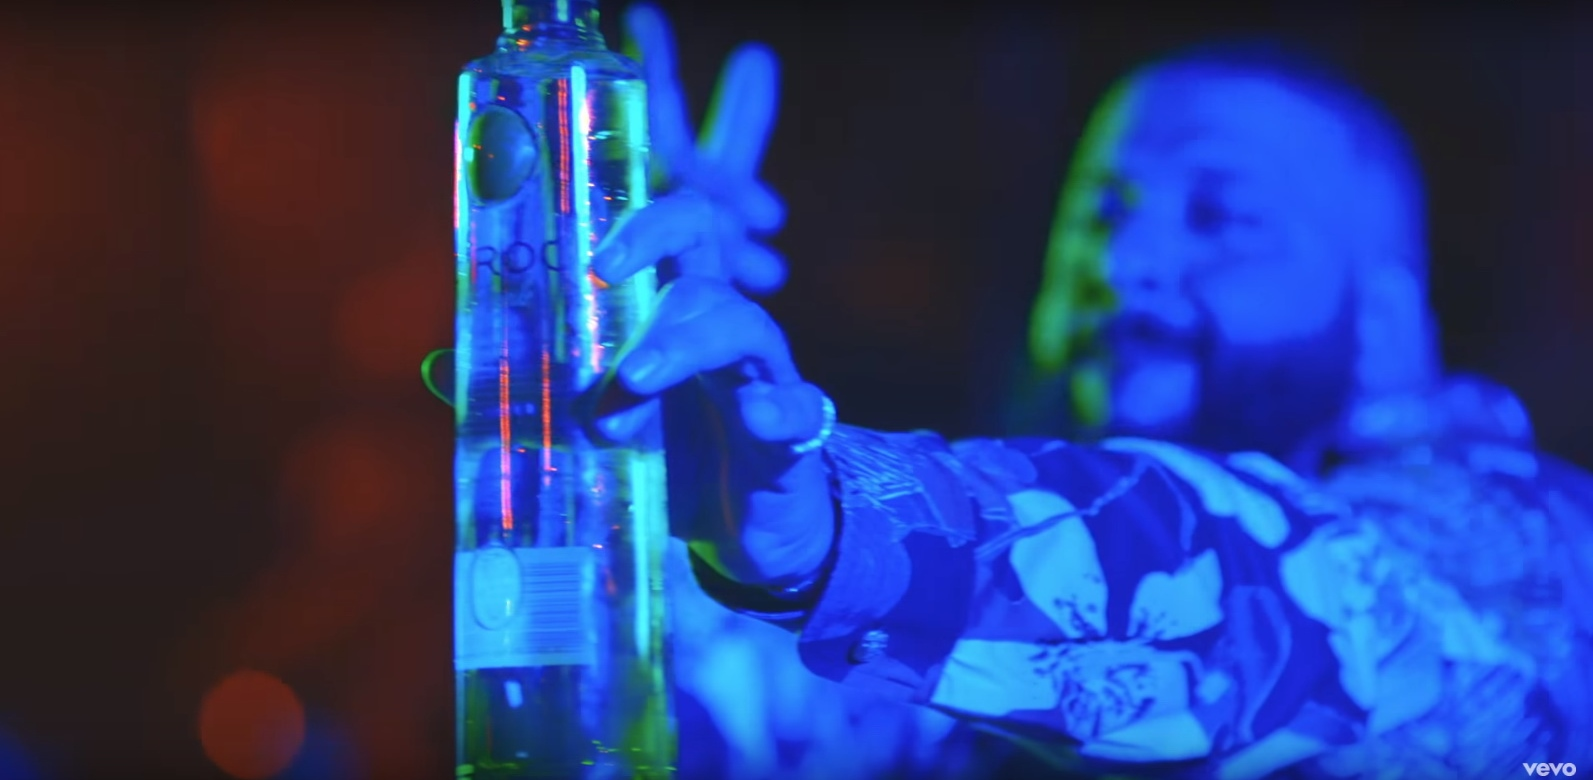 CÎROC Vodka - DJ Khaled - Wild Thoughts Official Music Video